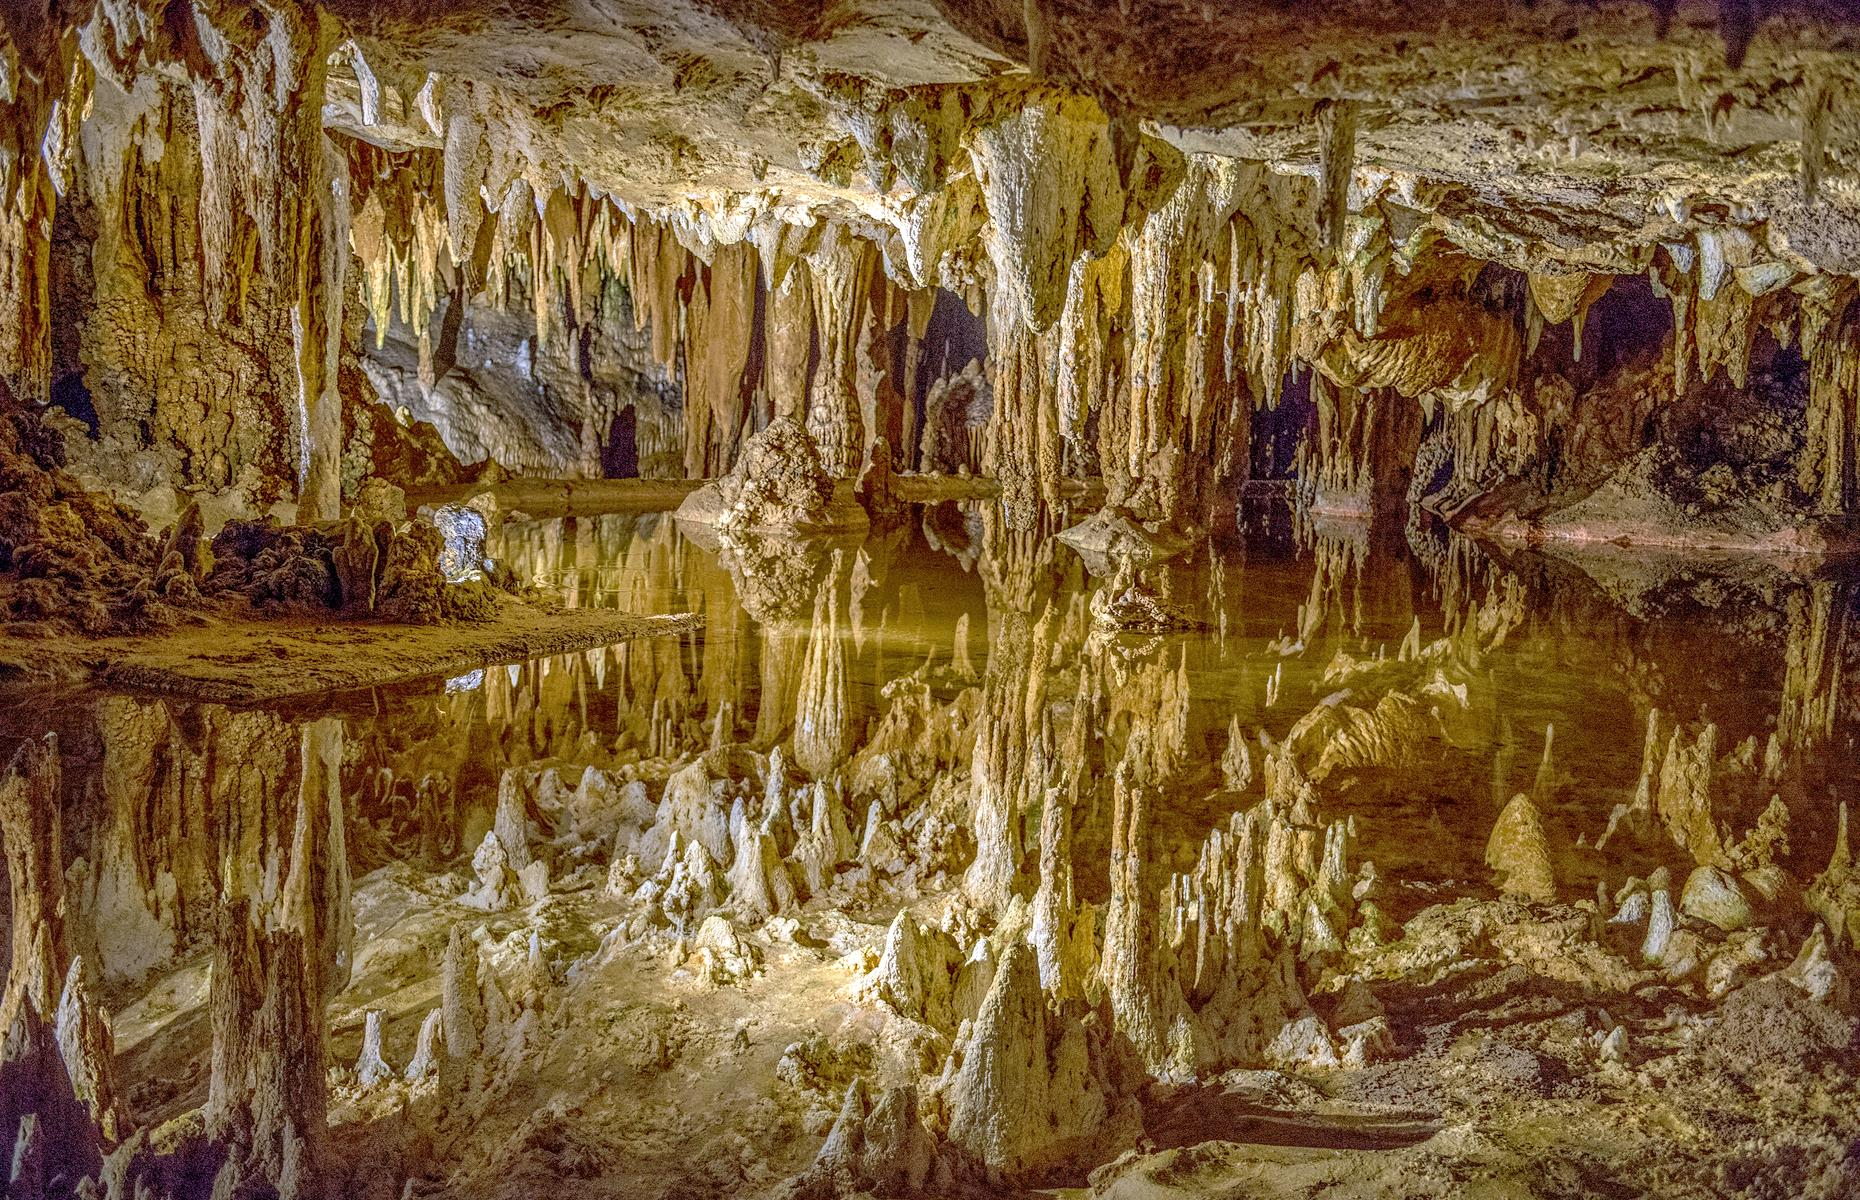 Slide 21 of 61: These otherworldly caverns, the most extensive in the eastern United States, open out below the Shenandoah Valley's Blue Ridge Mountains. The sand-colored stalagmites and stalactites have sprouted over millions of years, and winding tunnels give way to echoing chambers. Most fascinating of all is Dream Lake: its 20 inches of water look much deeper due to the reflections on its glittering surface. There's also an organ that uses the rock formations to make sweet music. The caverns have reopened with new COVID-19 measures in place for visitors.